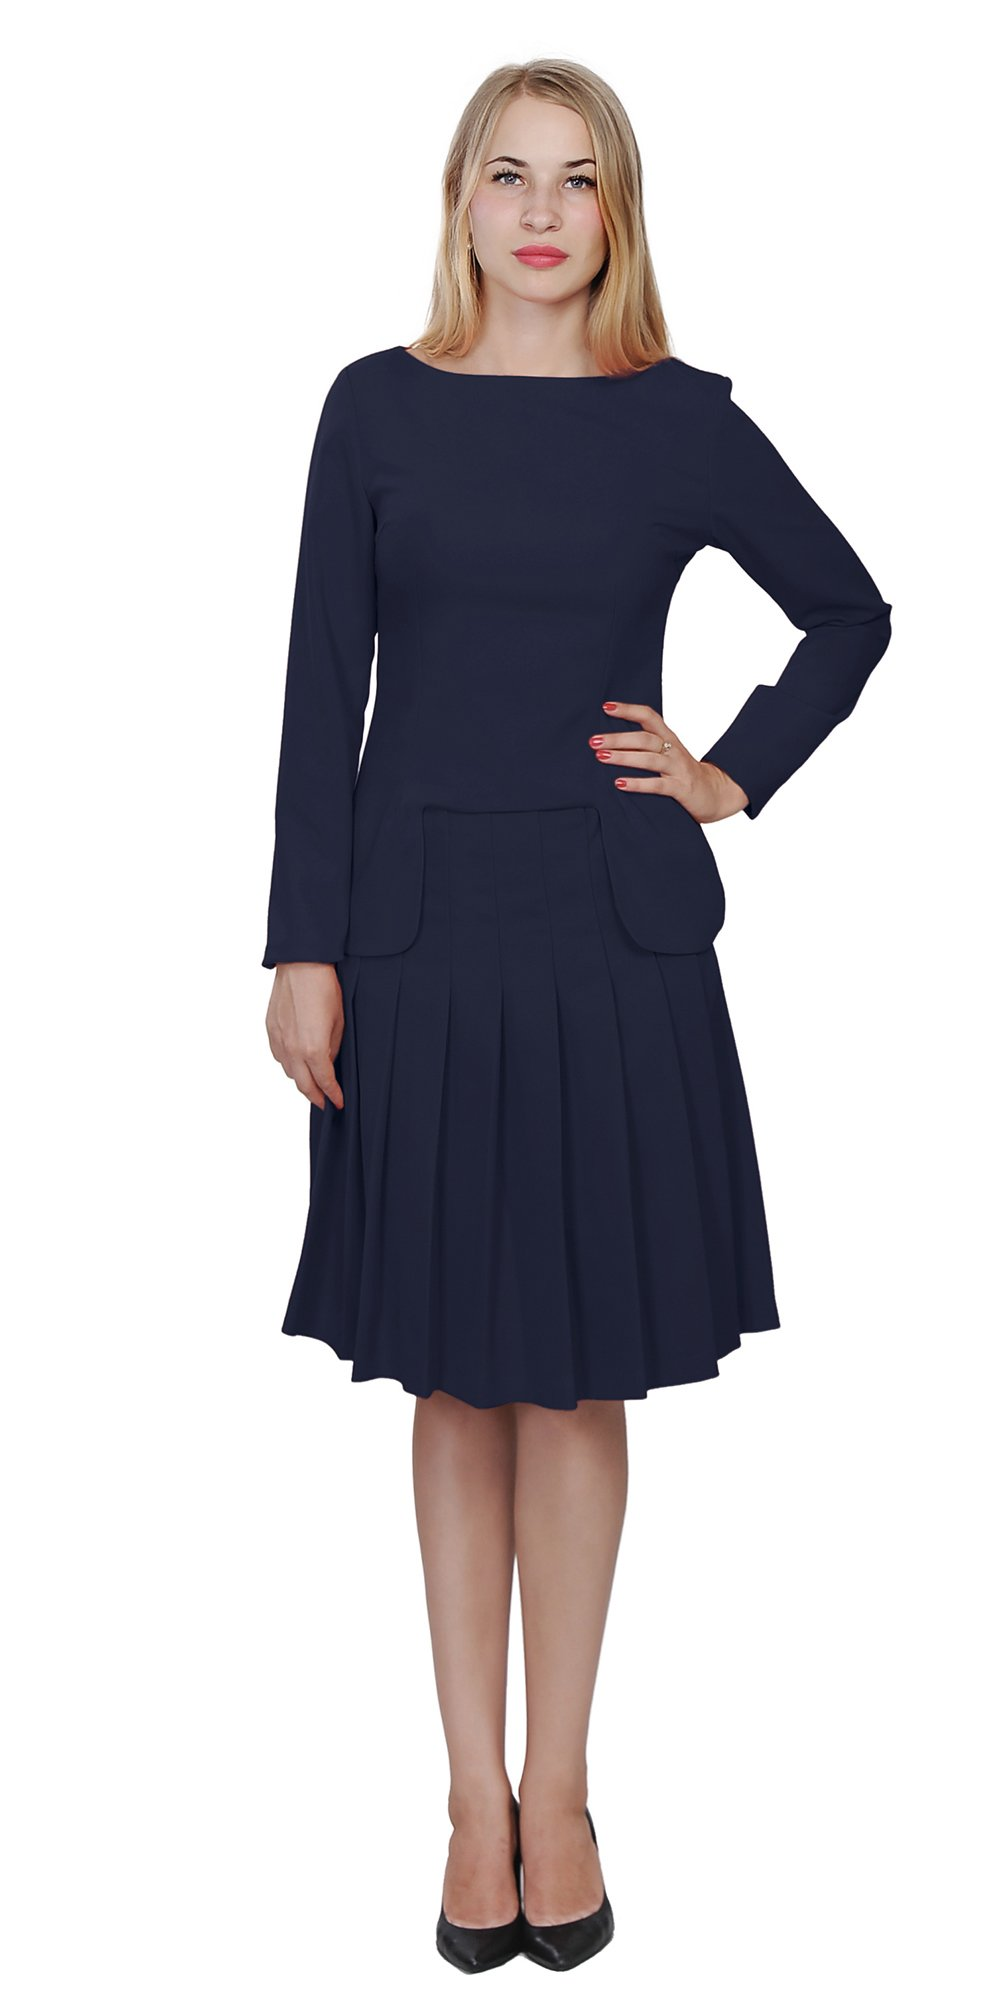 Marycrafts Womens Church Office Business Skirt Suits W Long Sleeves 16 Dark Blue